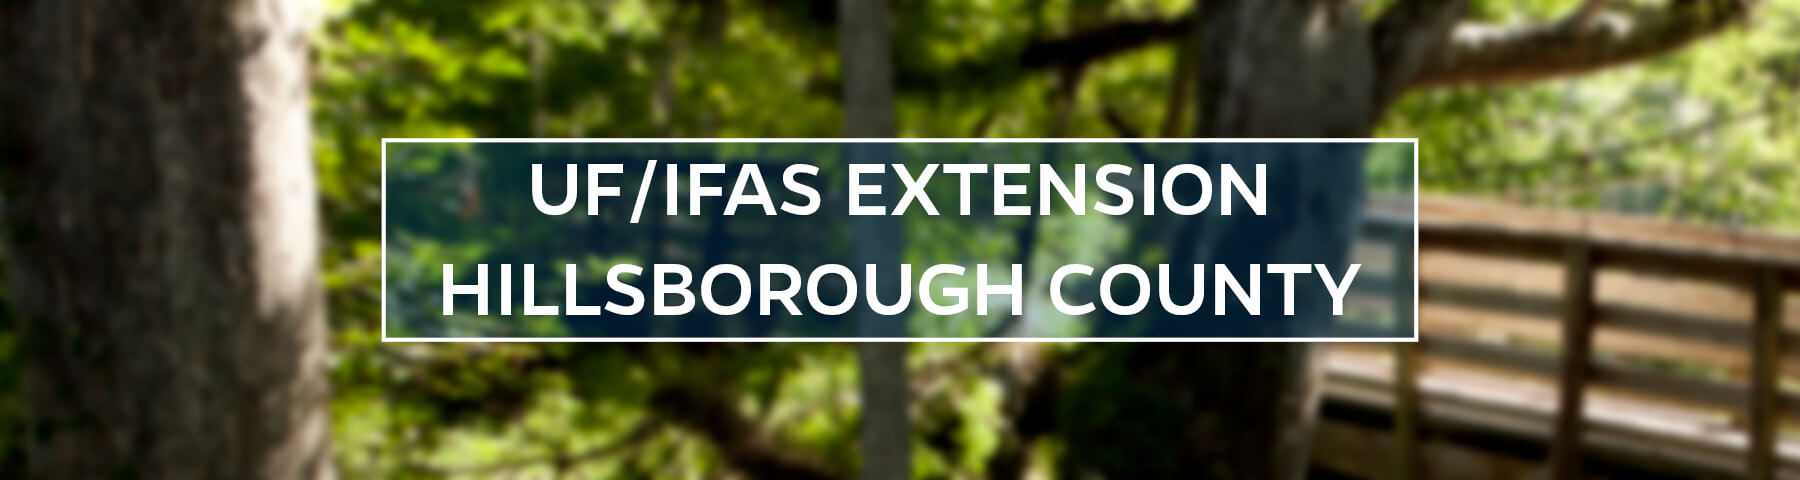 UF/IFAS Extension Hillsborough County